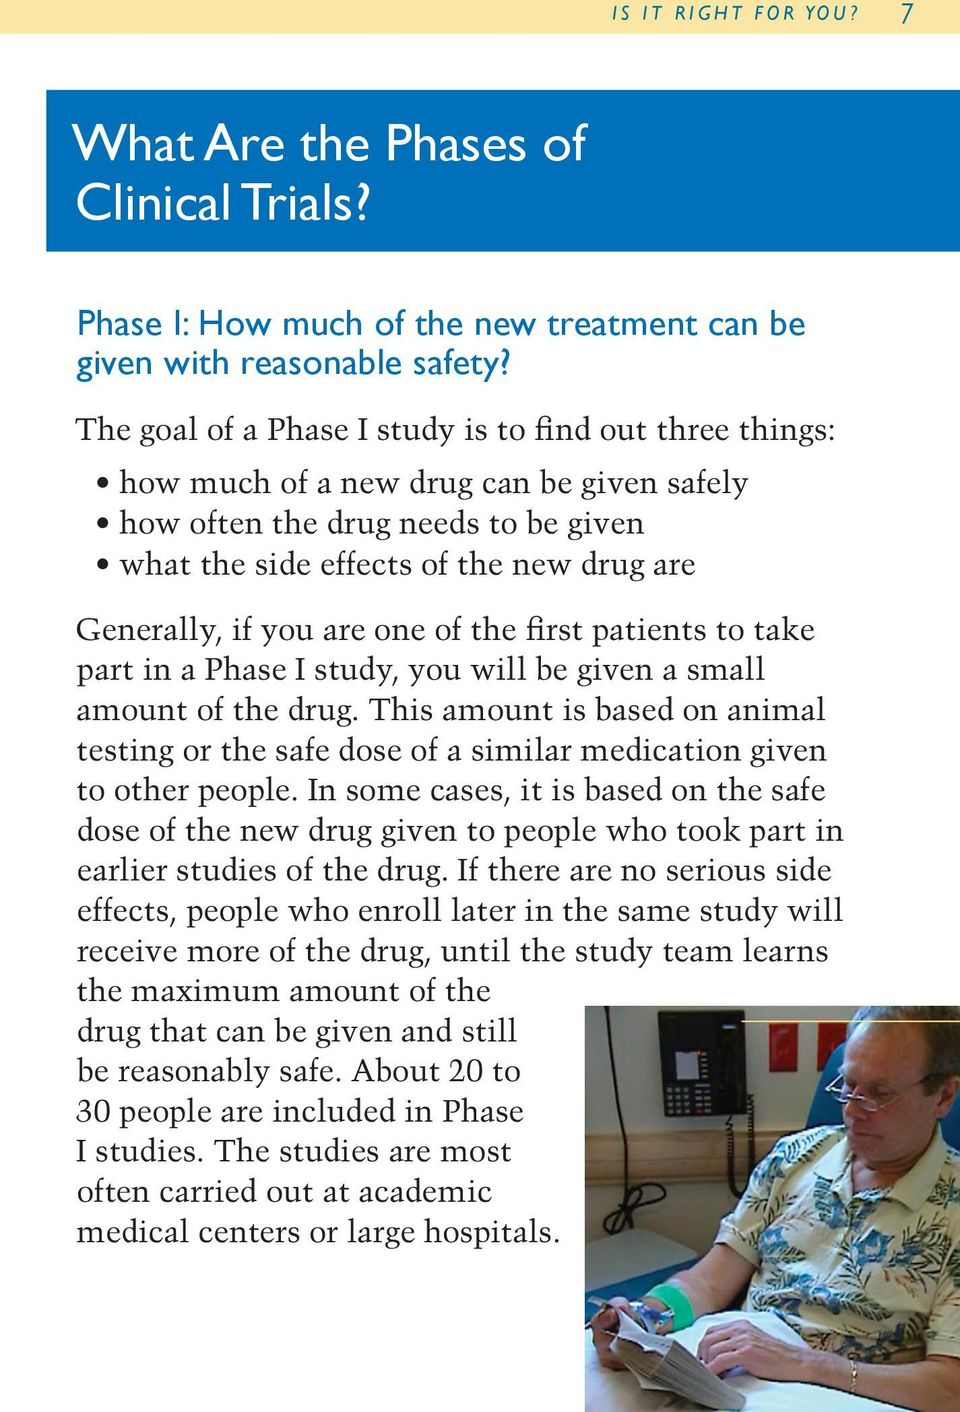 are one of the first patients to take part in a Phase I study, you will be given a small amount of the drug.